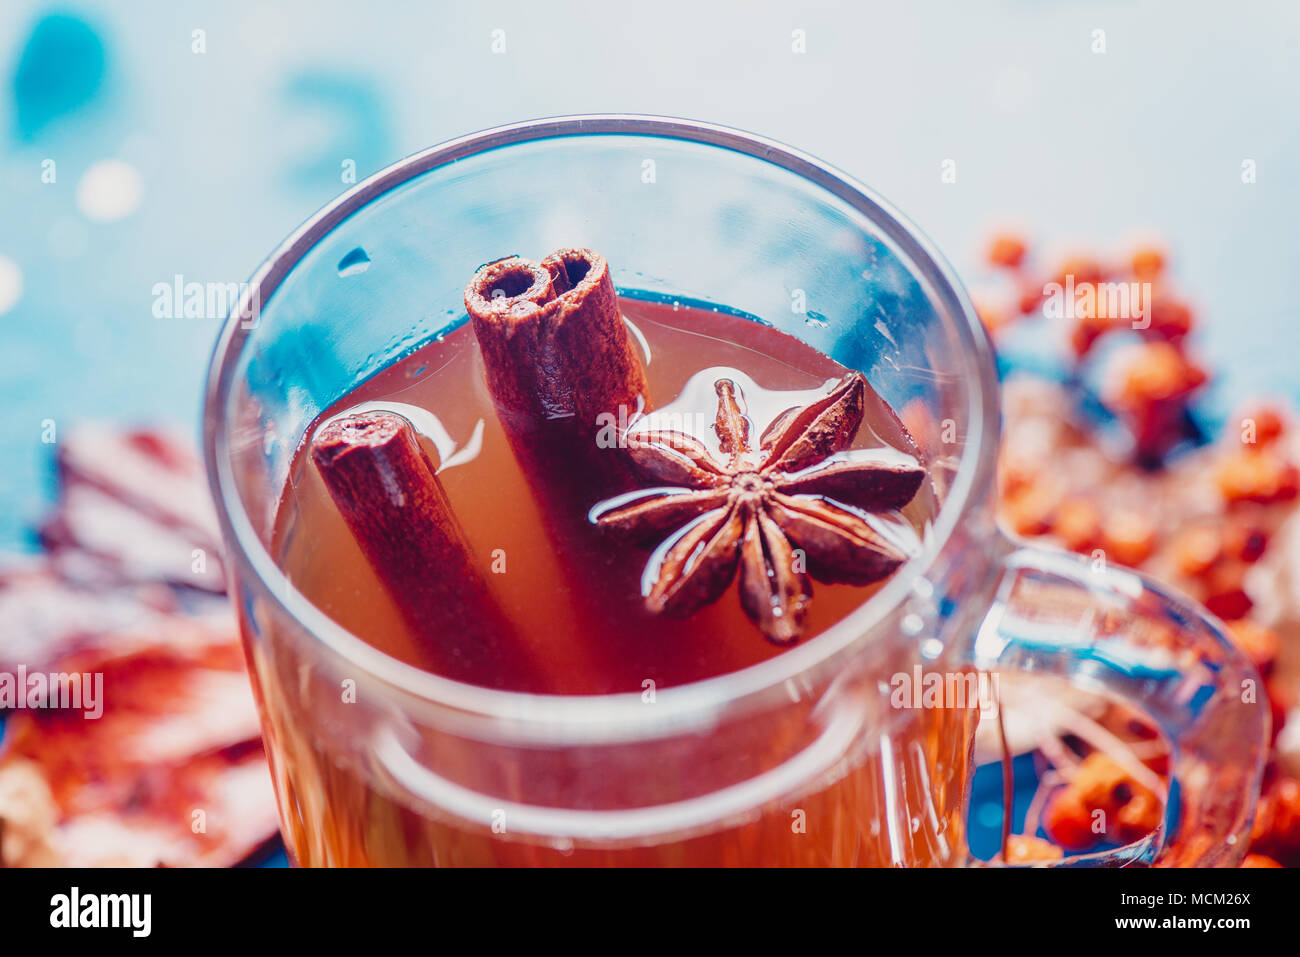 Tea cup with anise stars and cinnamon close-up. Out of focus autumn background with fallen leaves and berries. Rainy day concept with copy space. - Stock Image